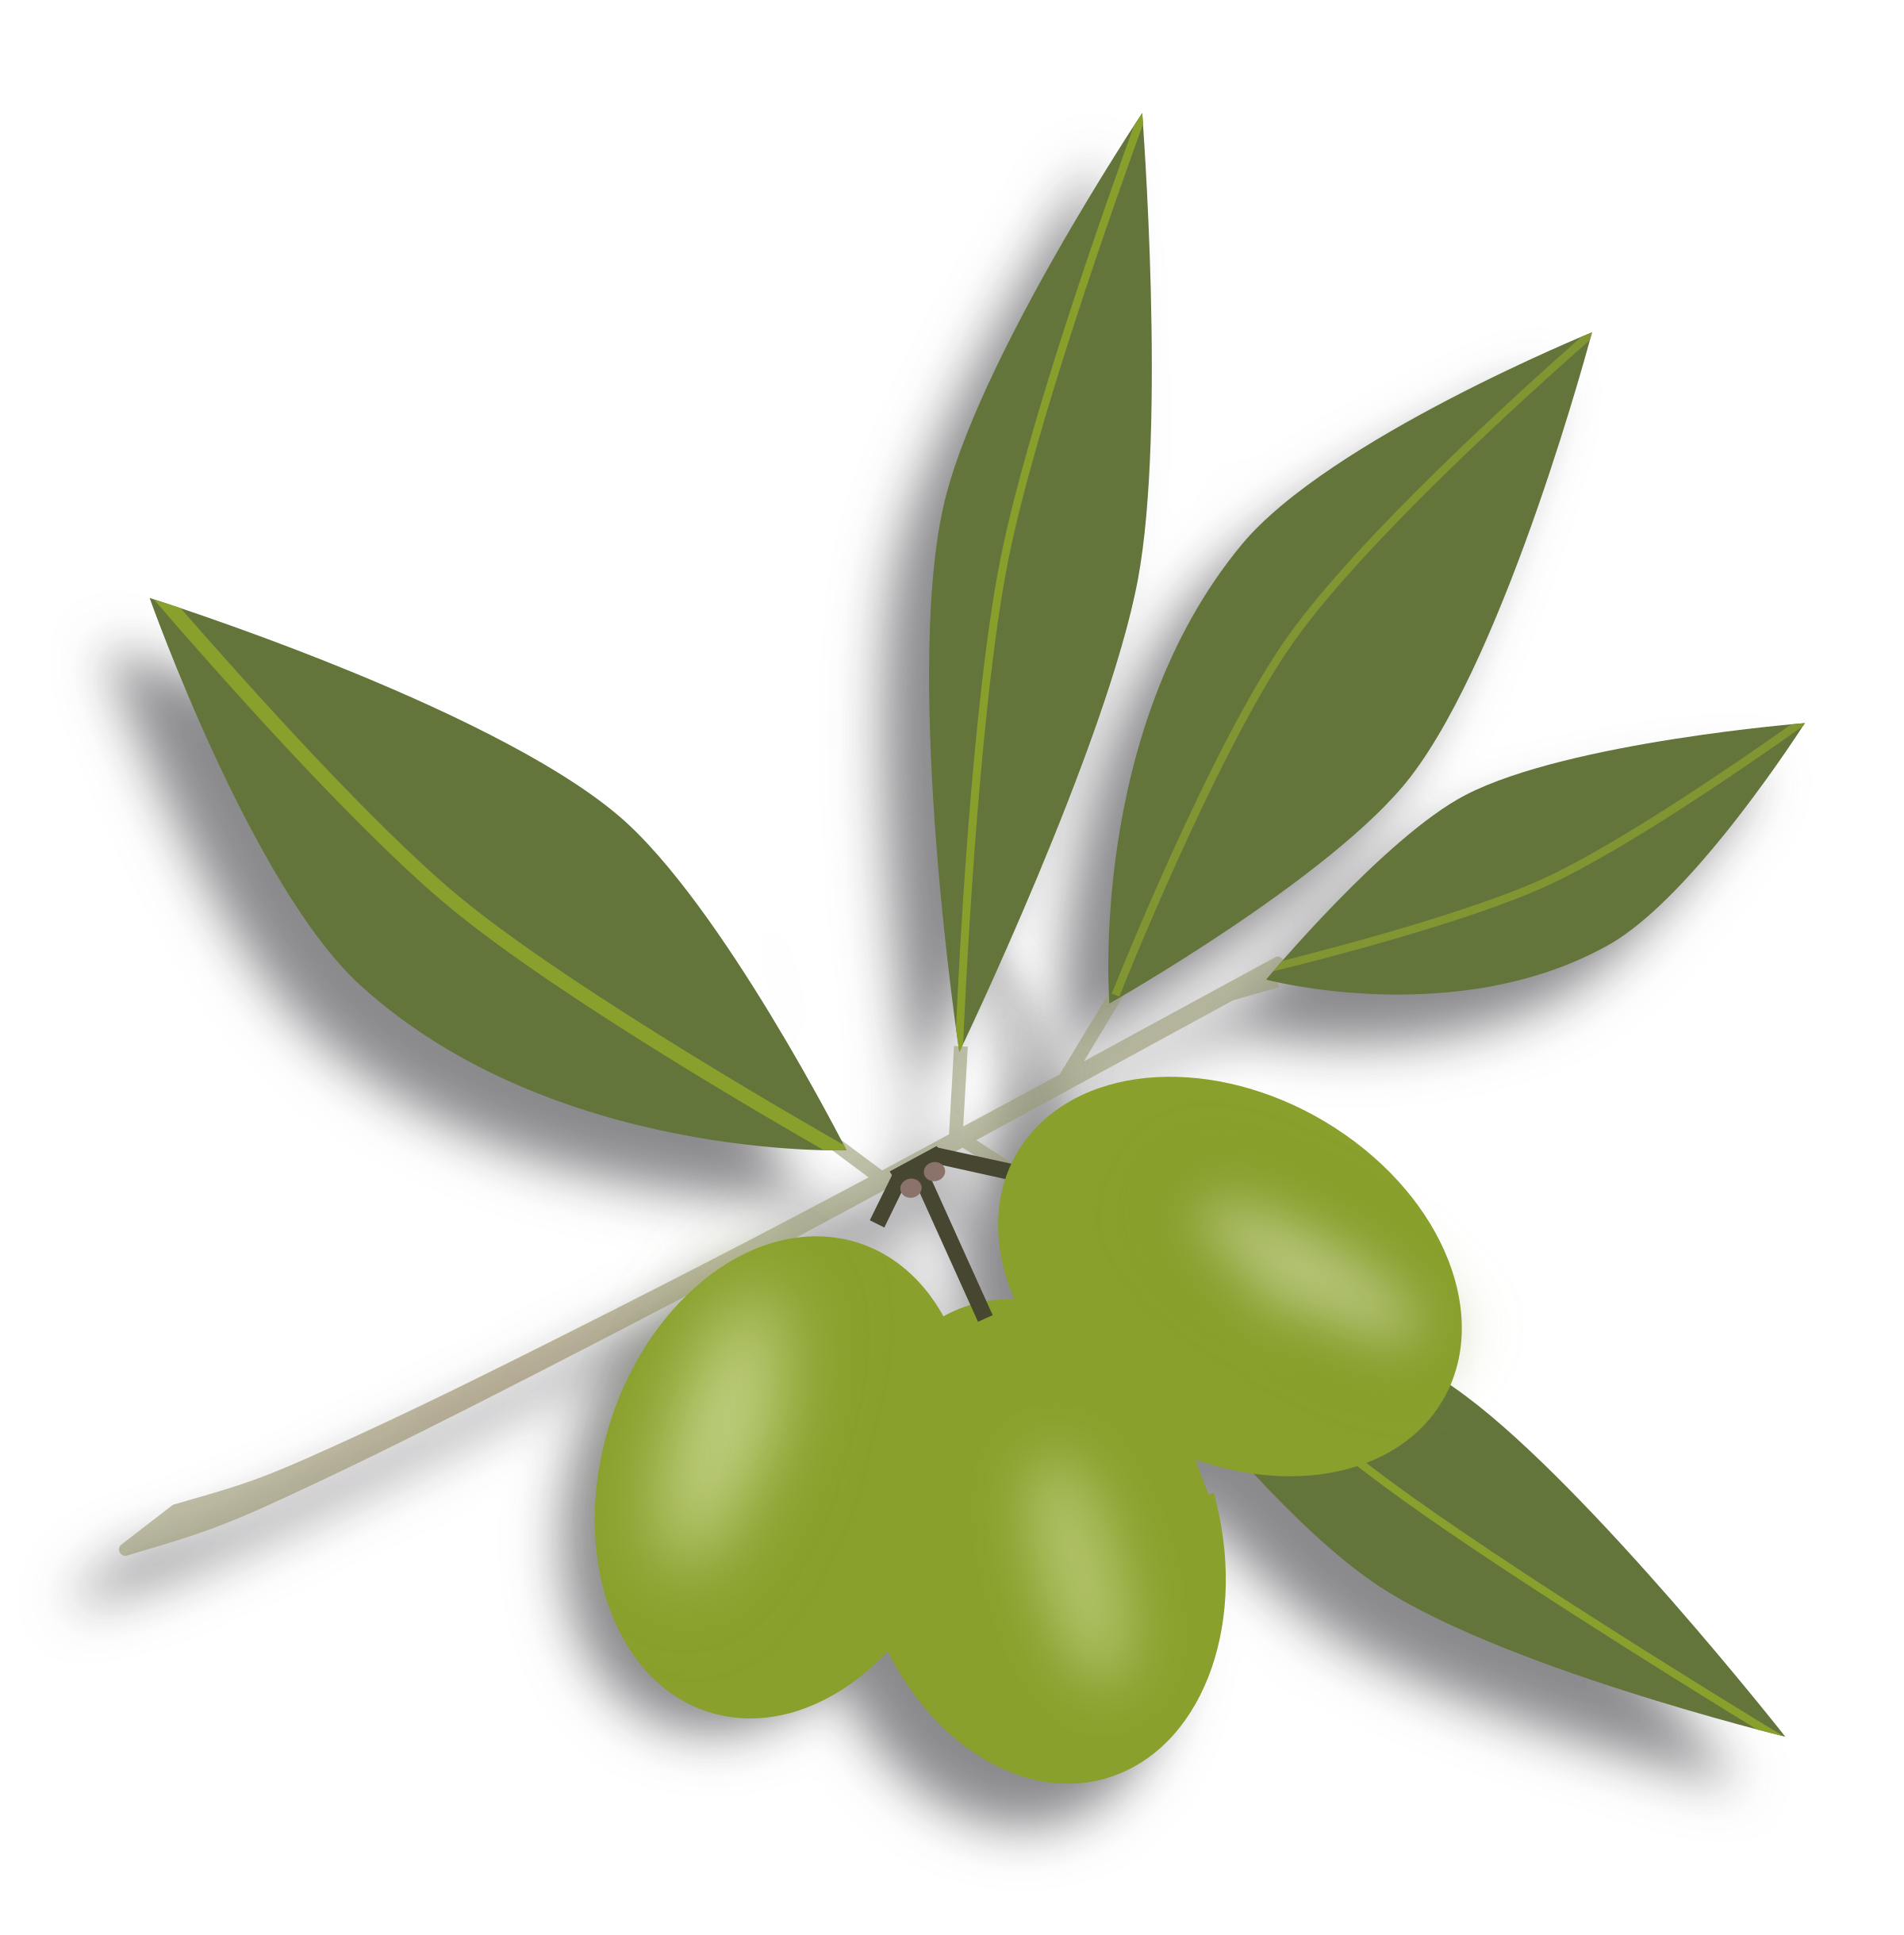 Olive clipart. Free olives cliparts download